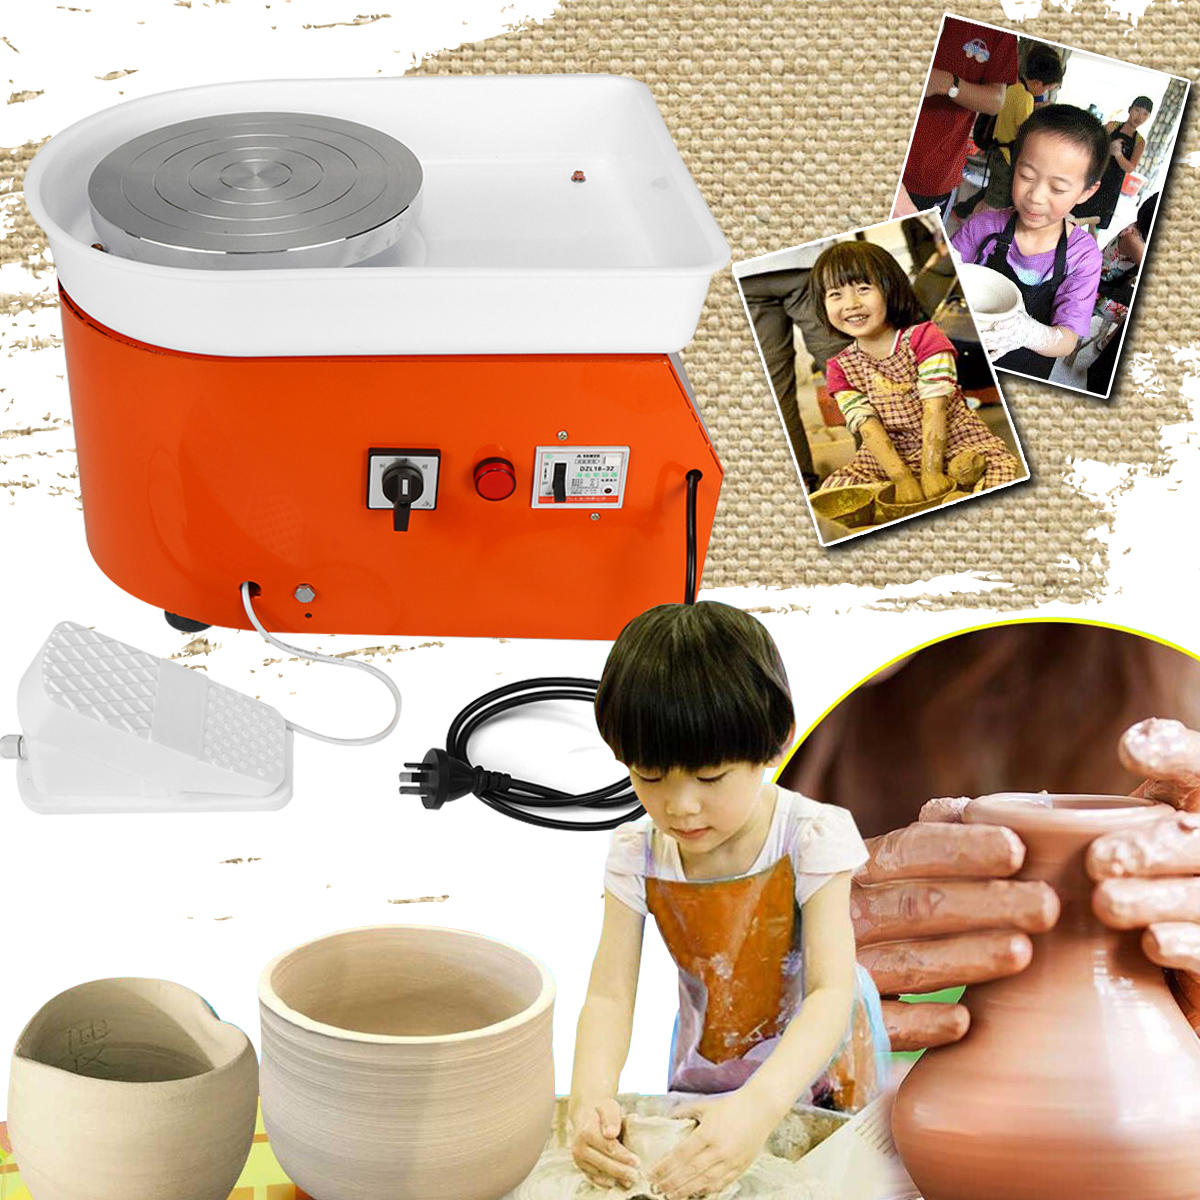 25cm Pottery Wheel Machine Ceramic Work Ceramics Clay Art EU/AU AC220V 250-350W With Mobile Flexible Foot Pedal Smooth Low Noise 25cm 350w pottery wheel pottery diy clay machine for ceramic work ceramics clay 220v children learning machine